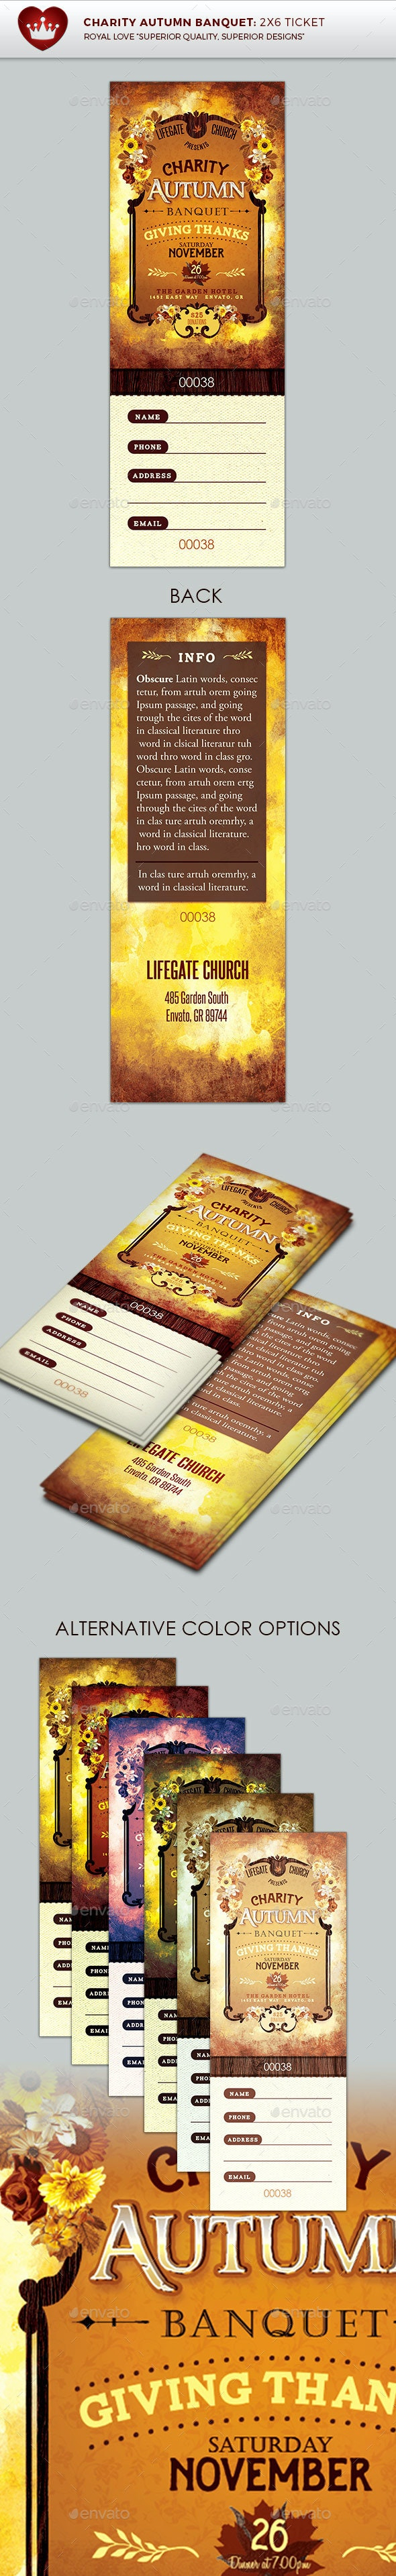 Charity Autumn Banquet Ticket - Holidays Events